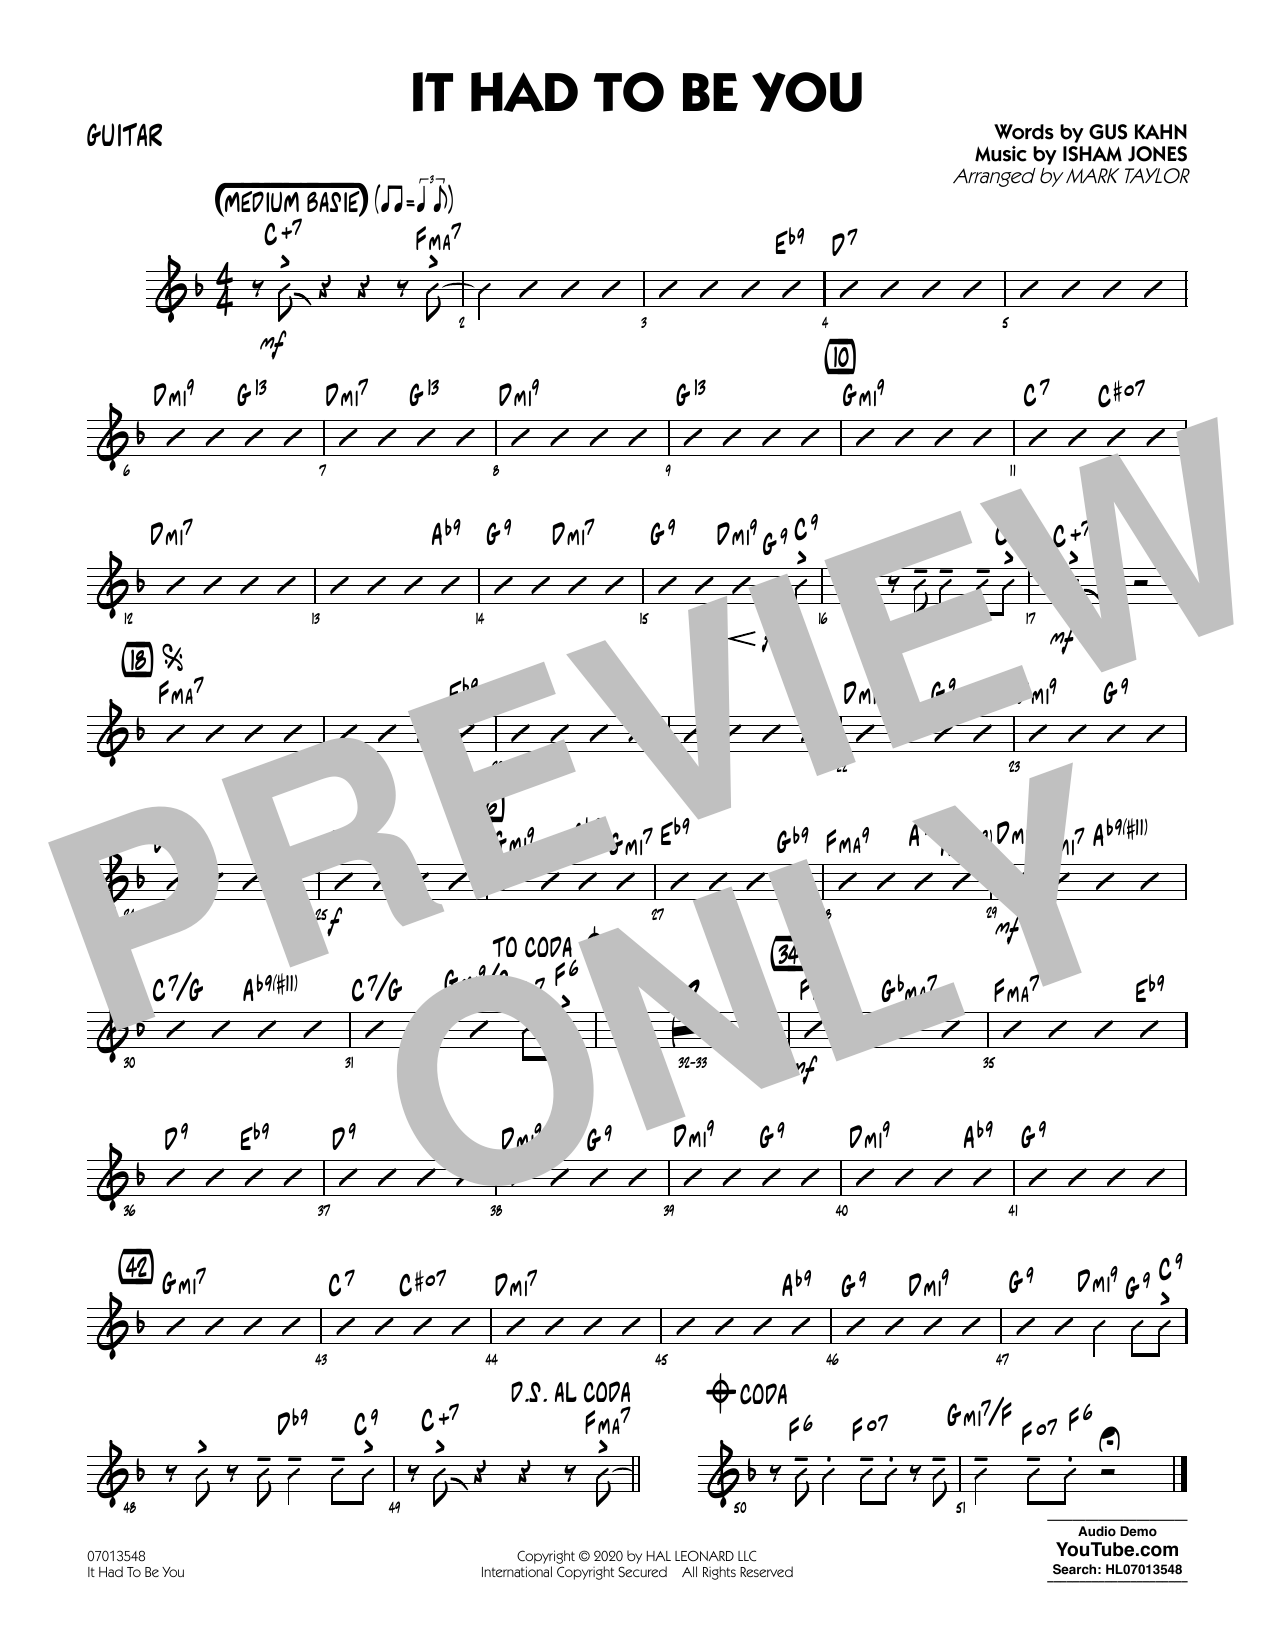 It Had to Be You (arr. Mark Taylor) - Guitar Sheet Music